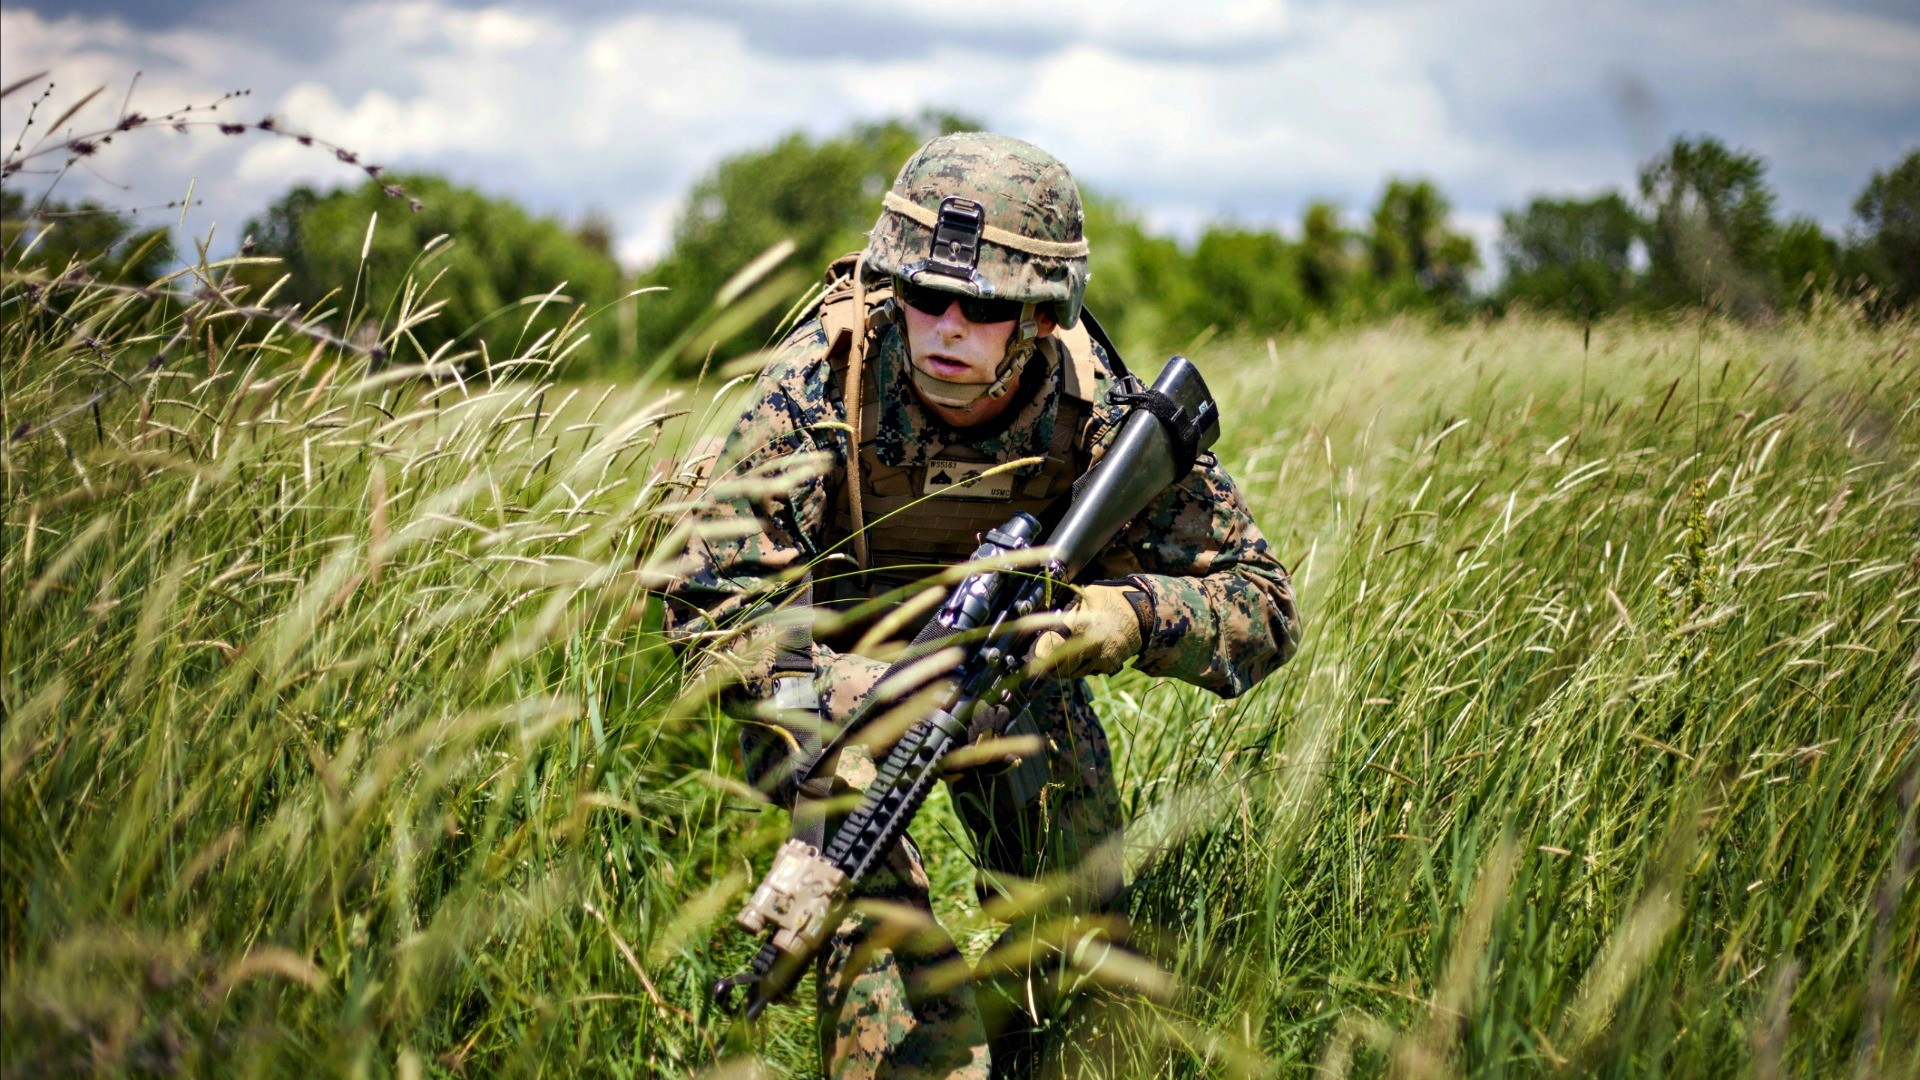 Us Army Soldier HD desktop wallpaper : High Definition Army Wallpapers HD